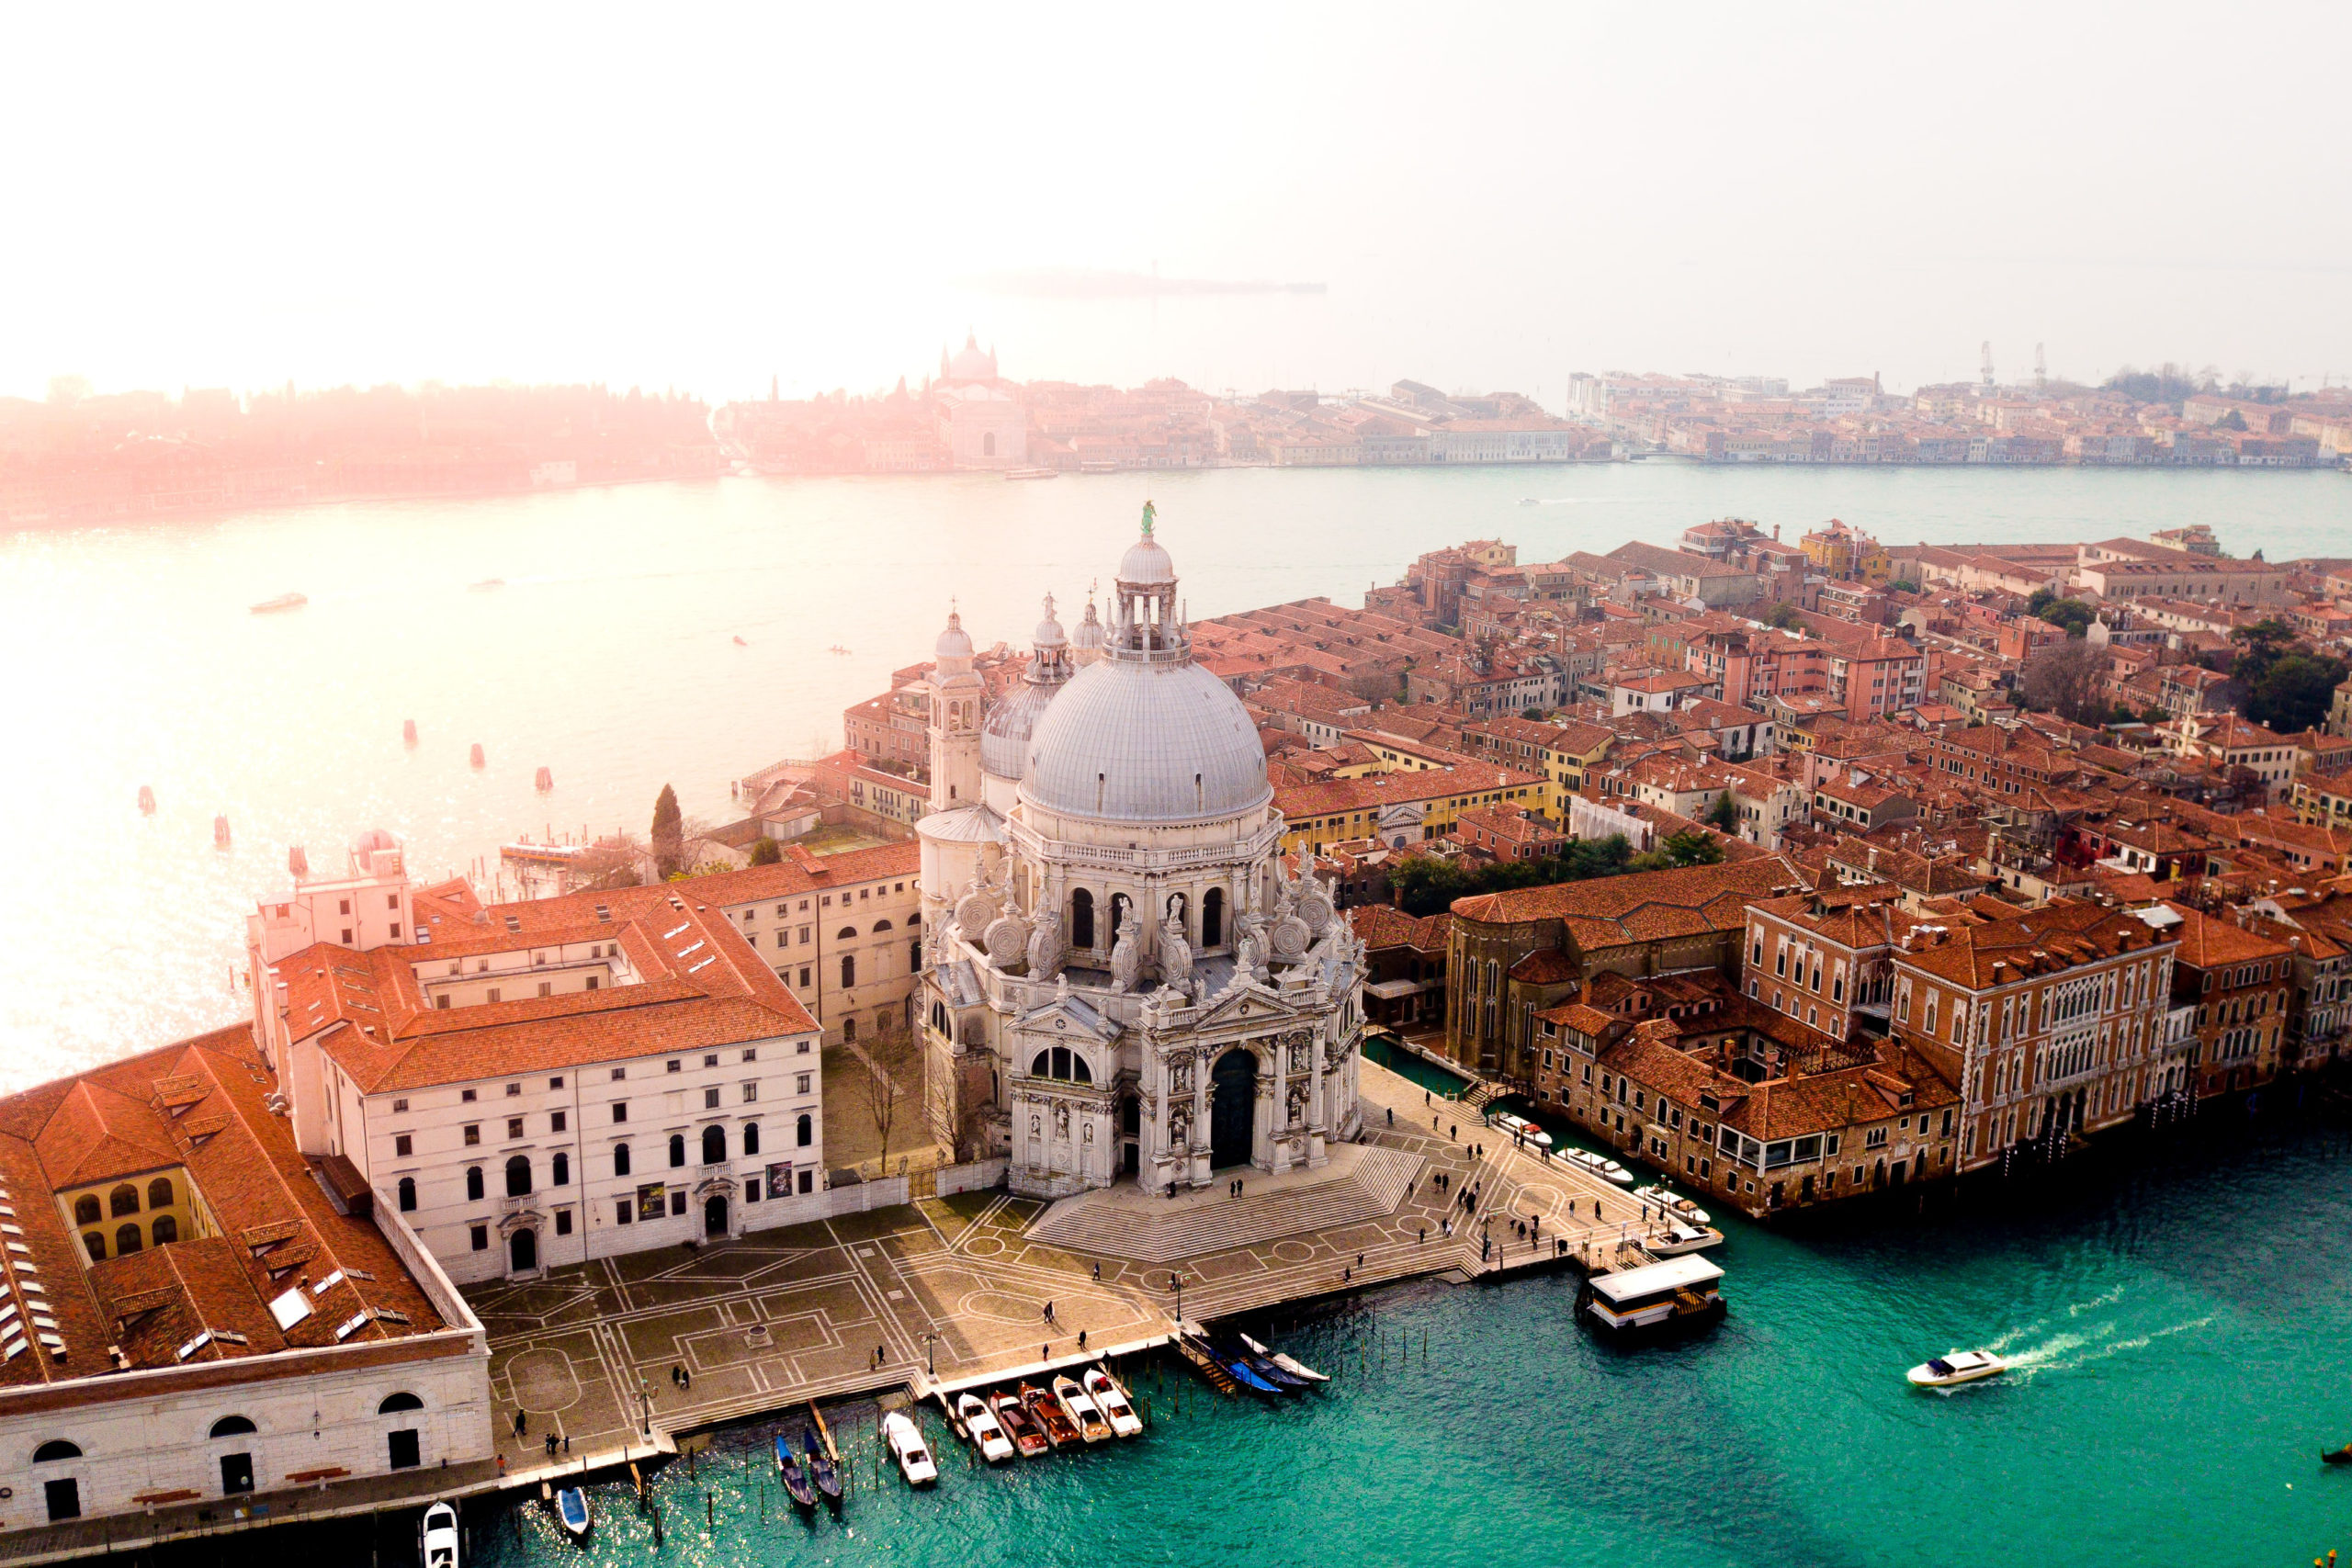 areal view of Venice Italy